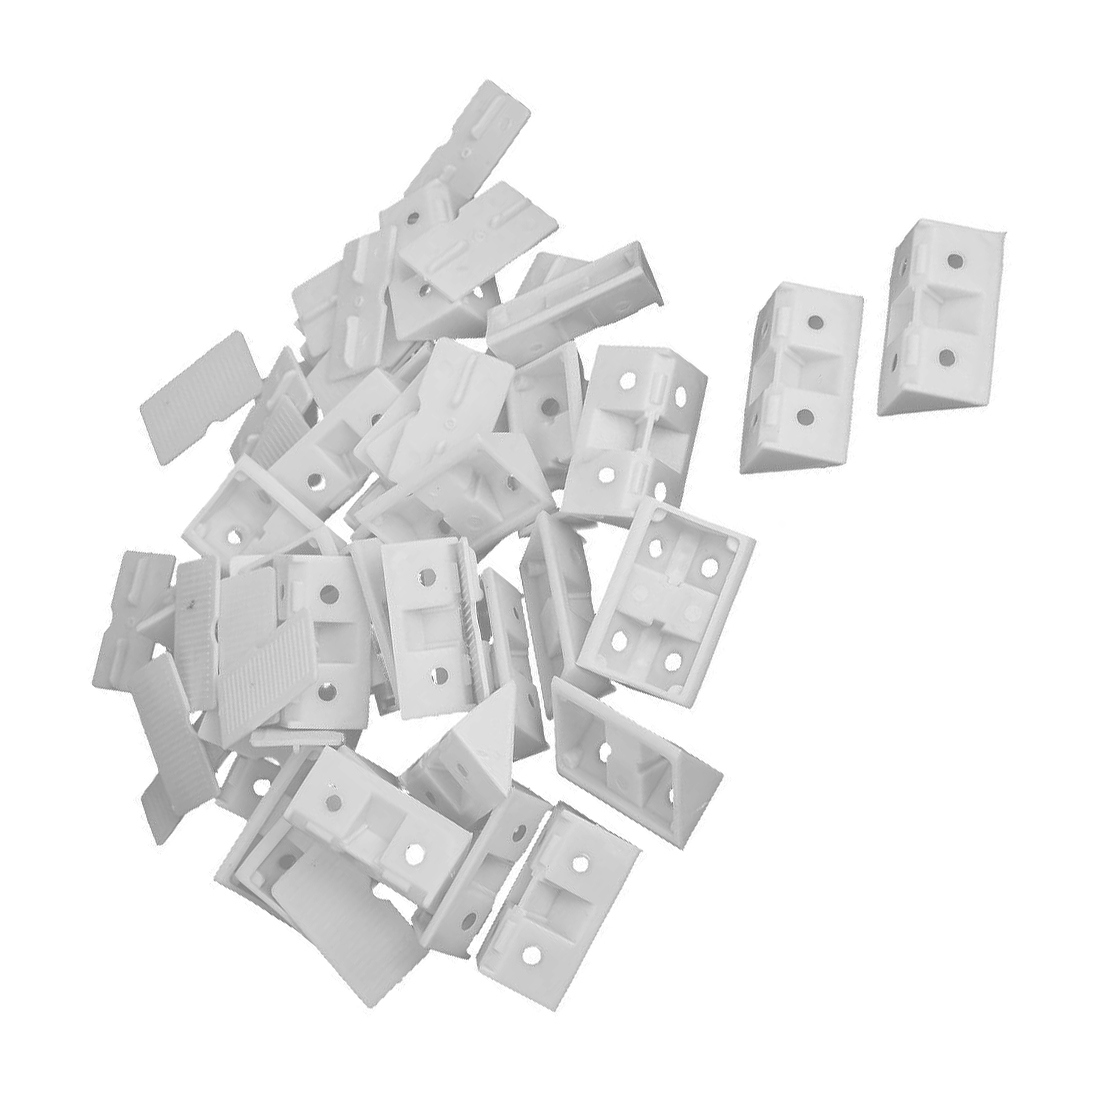 30pcs Shelf Cabinet 90 Degree Plastic Corner Braces Angle Brackets White